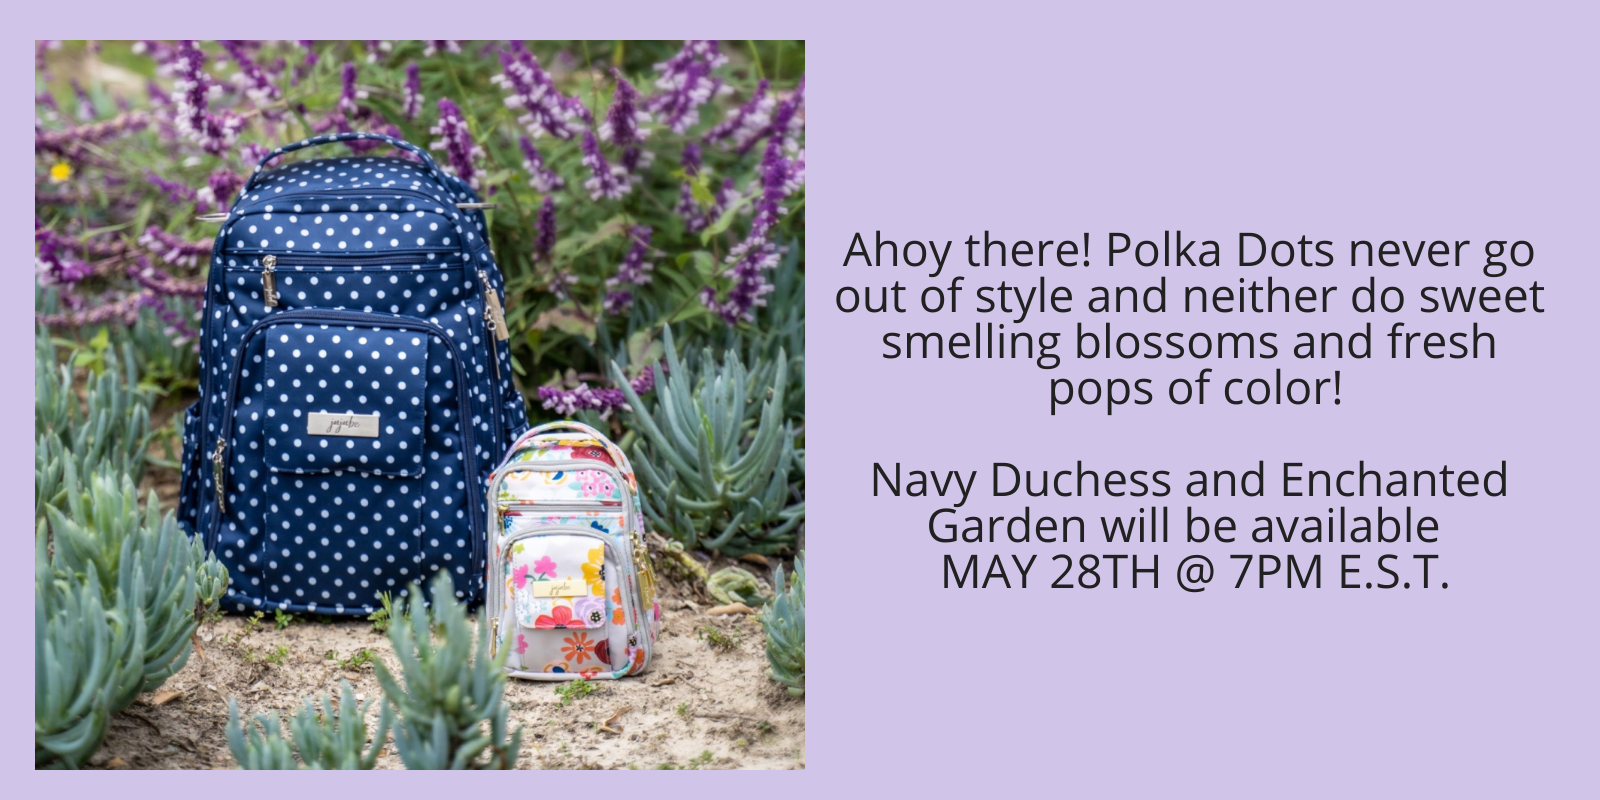 JuJuBe Diaper bags in Navy Duchess and Enchanted Garden prints